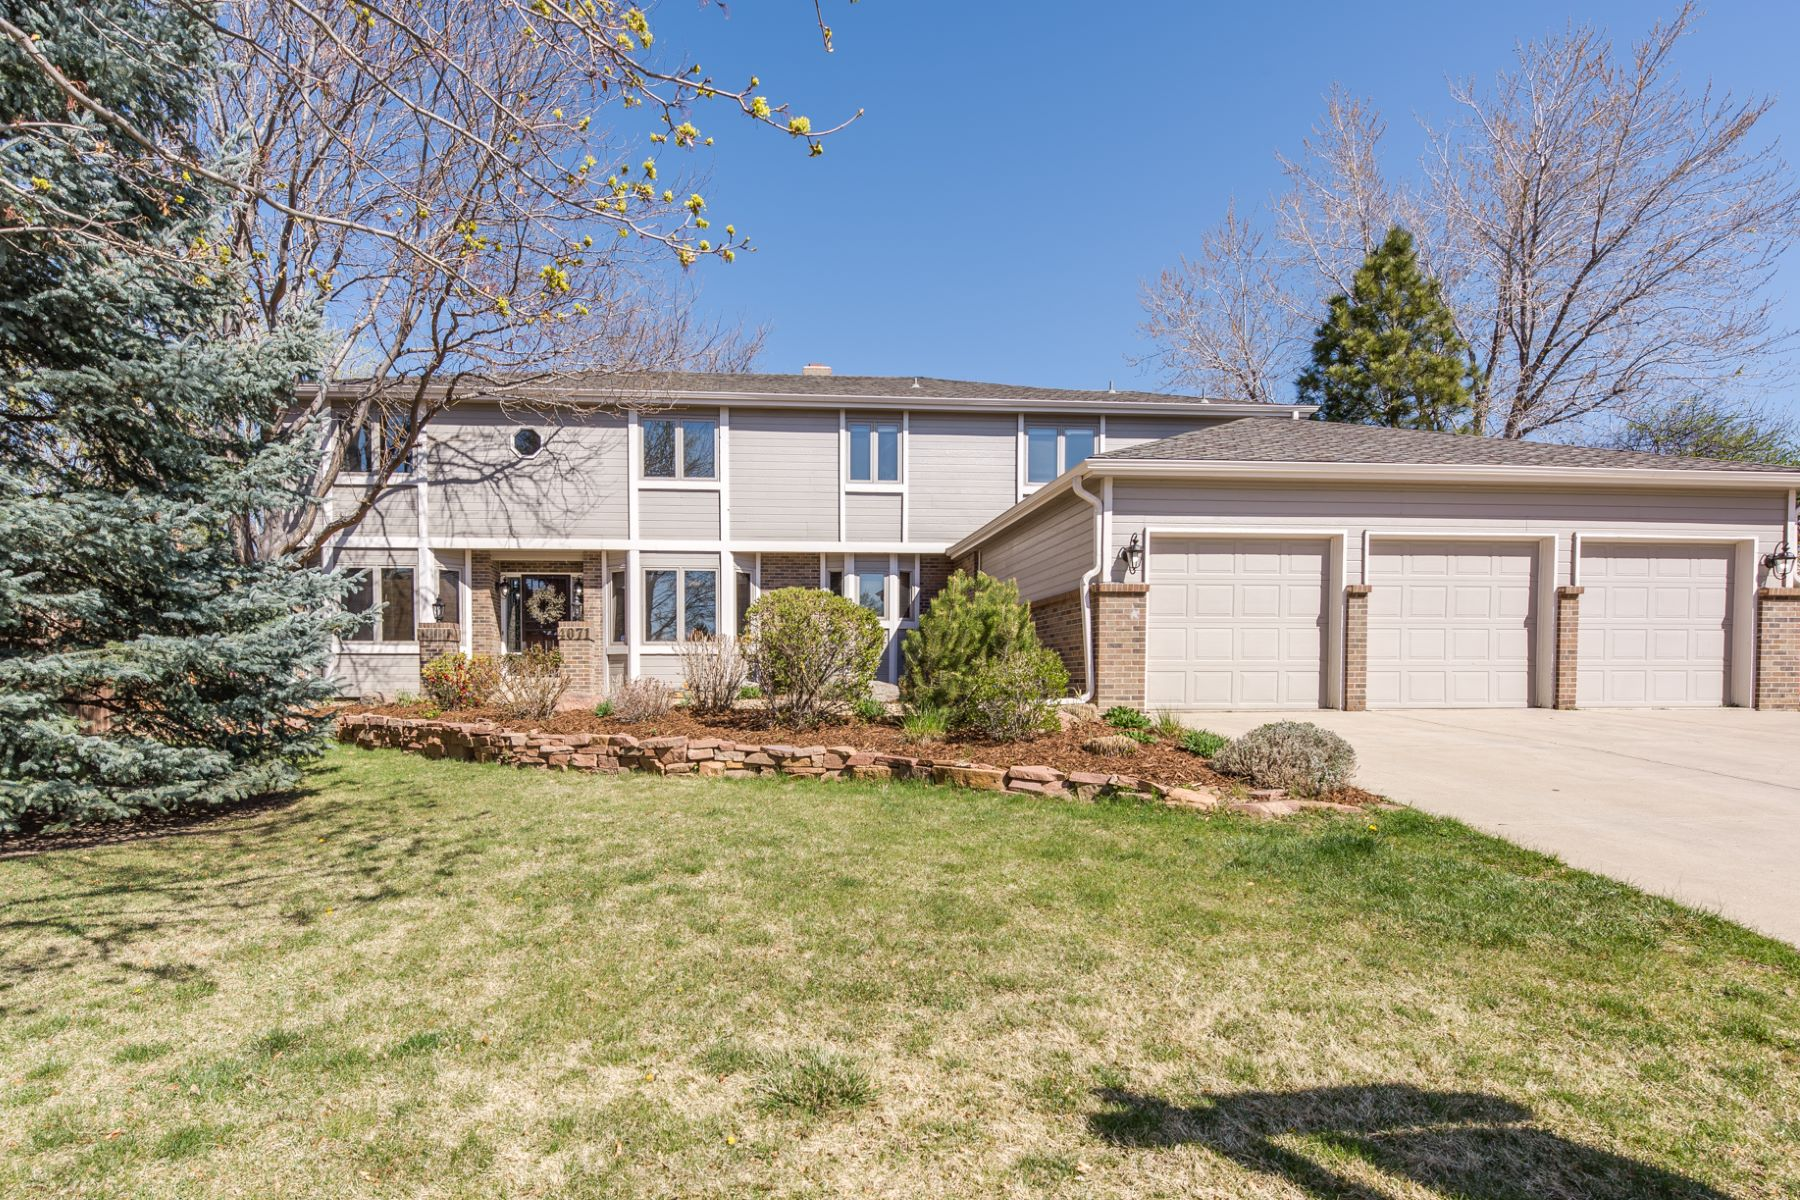 Single Family Home for Sale at 4071 S Zephyr 4071 South Zephyr Court Lakewood, Colorado, 80235 United States